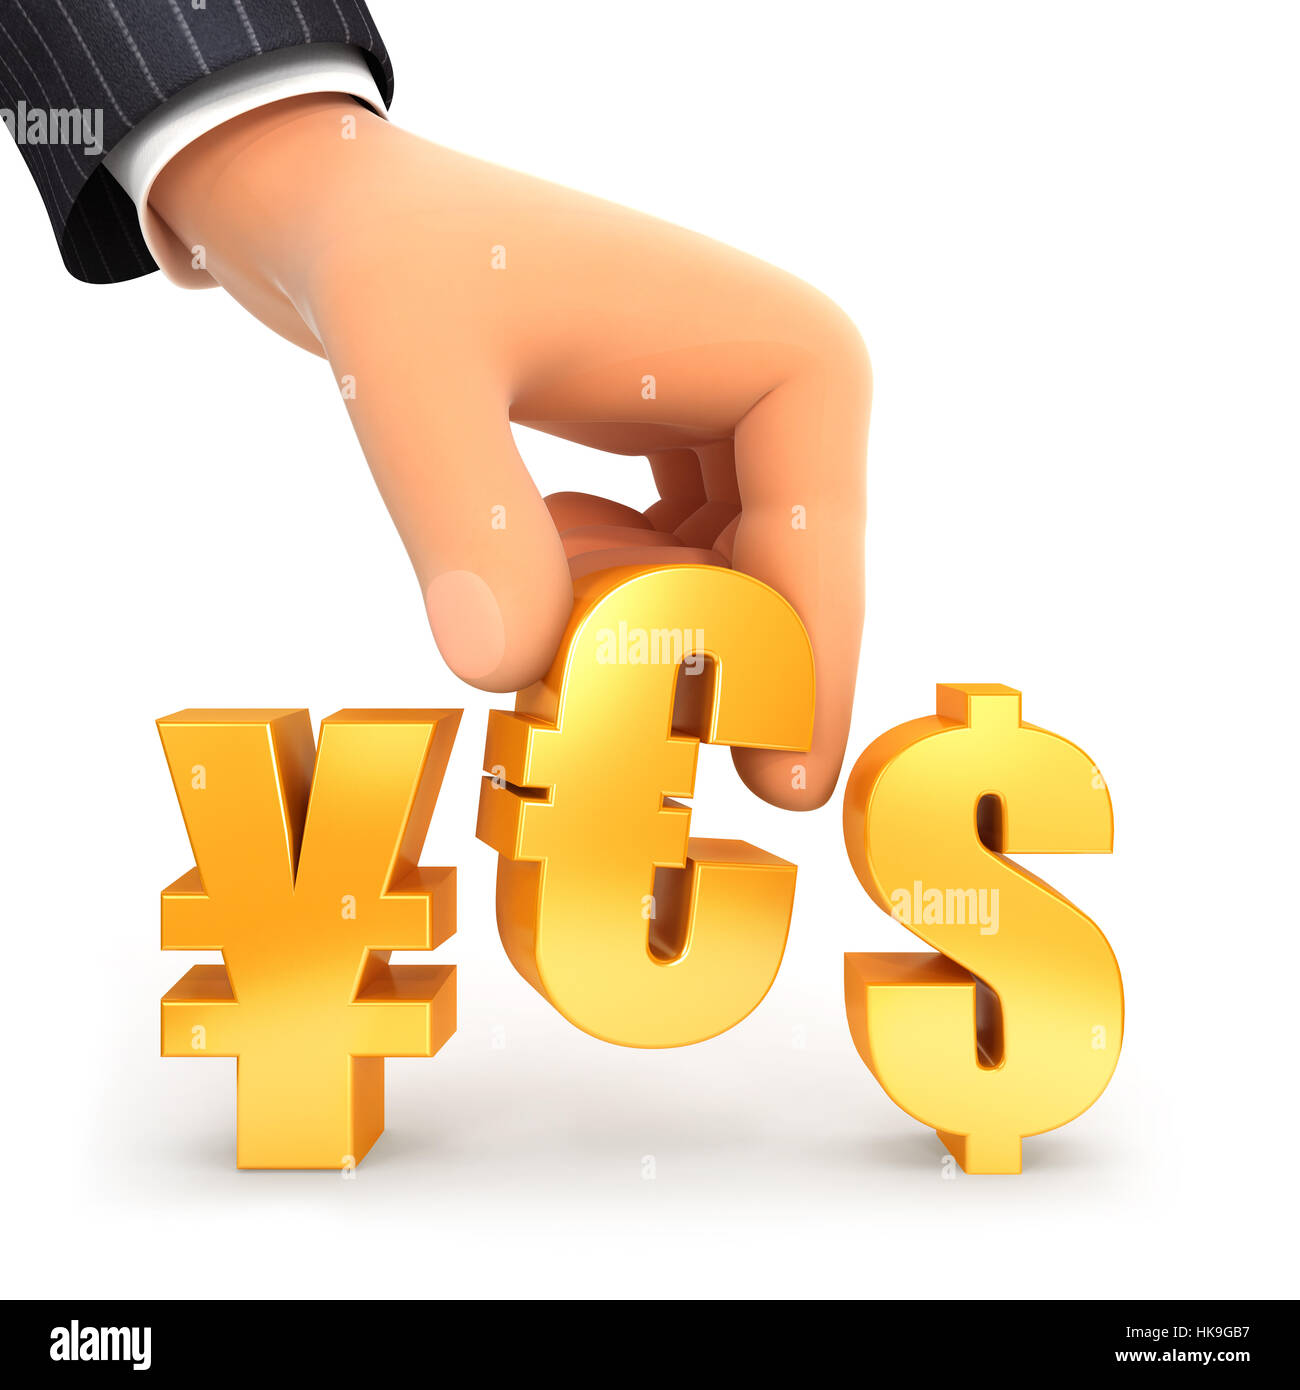 3d hand and currency sign yes concept, illustration with isolated white background Stock Photo